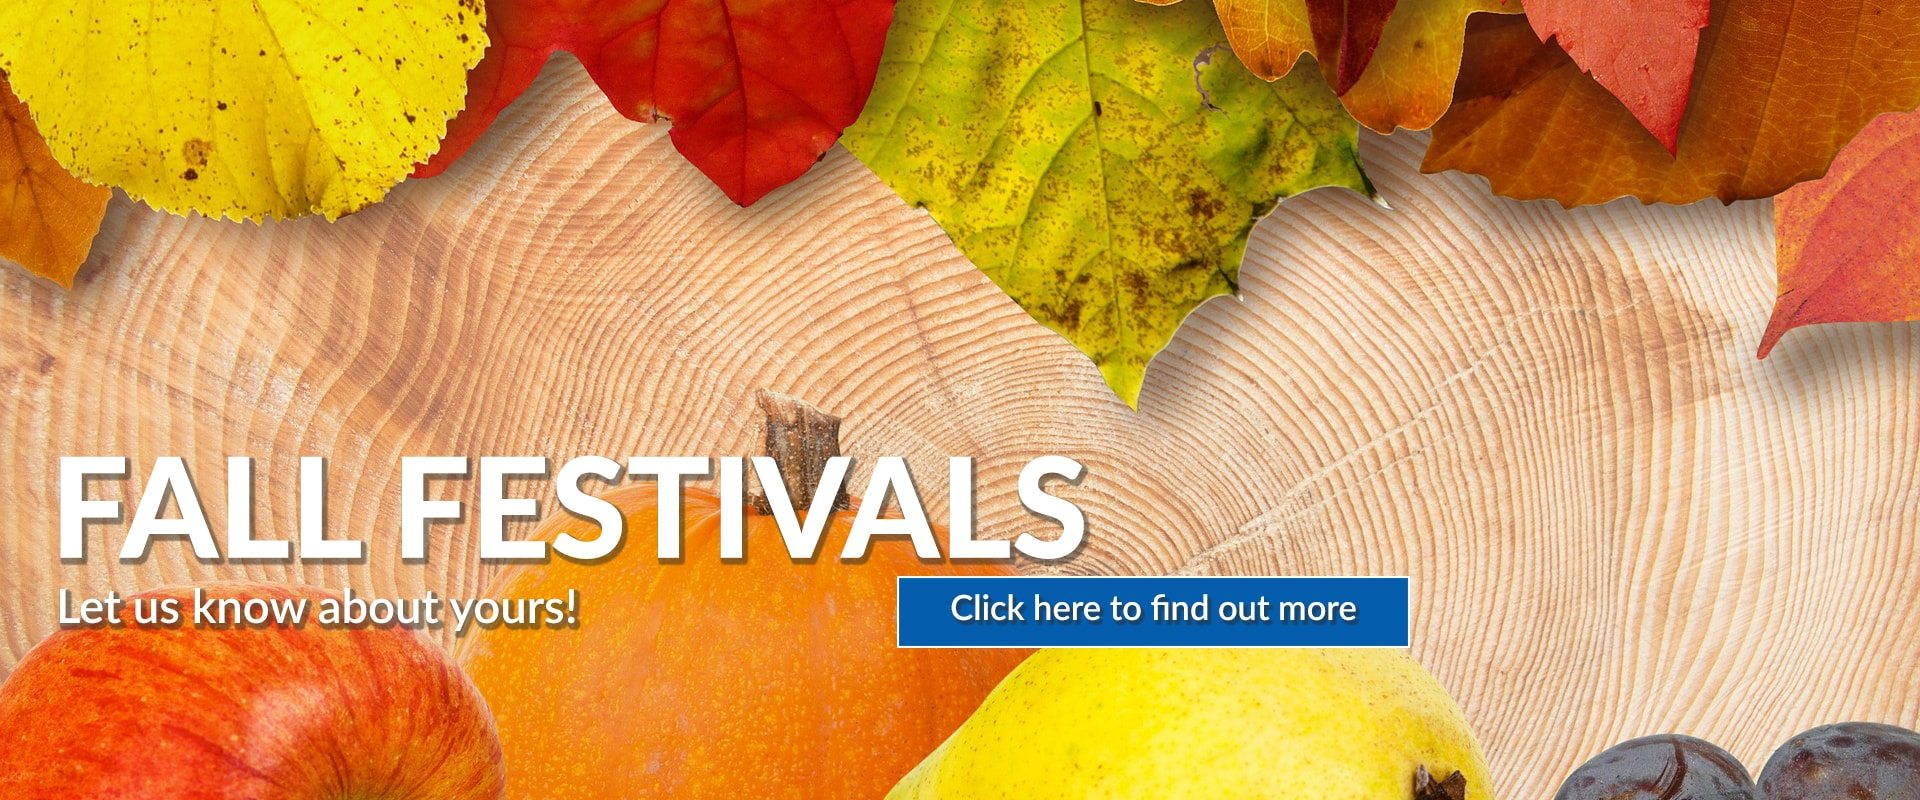 91.3 KGLY Fall Festivals Road Trips East Texas